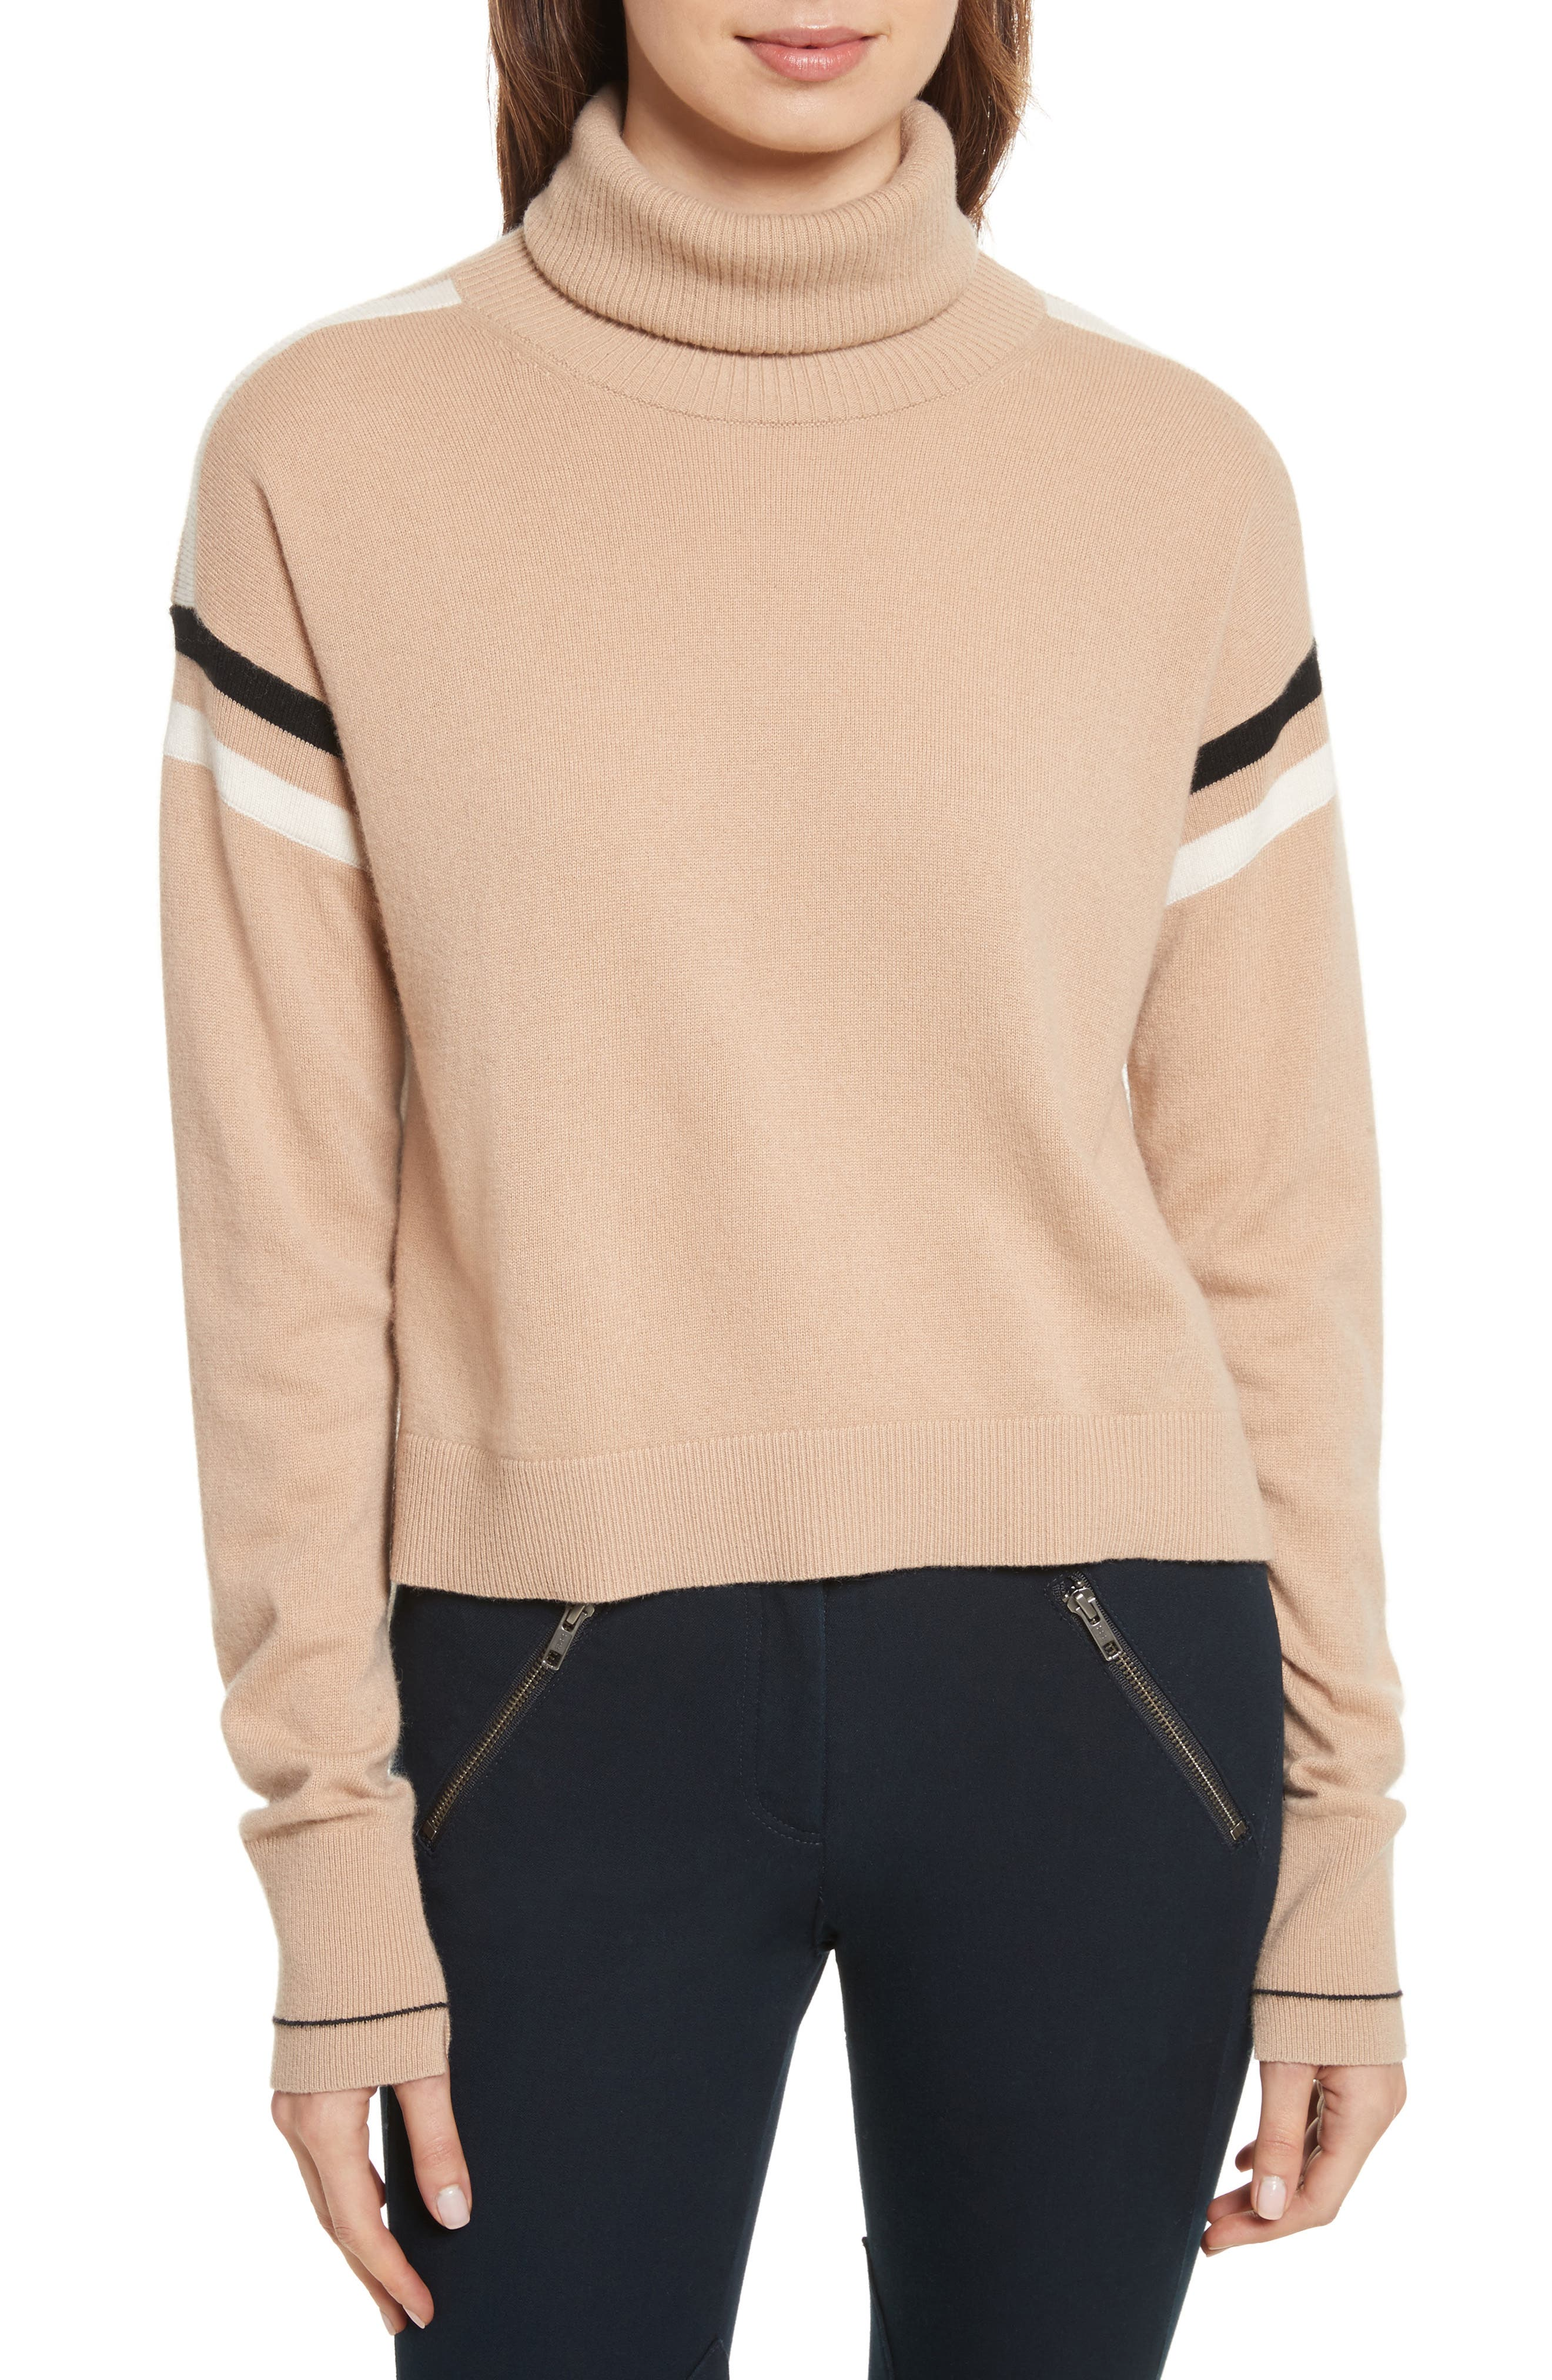 Canter Cashmere Turtleneck,                         Main,                         color, Camel/ Ivory/ Black